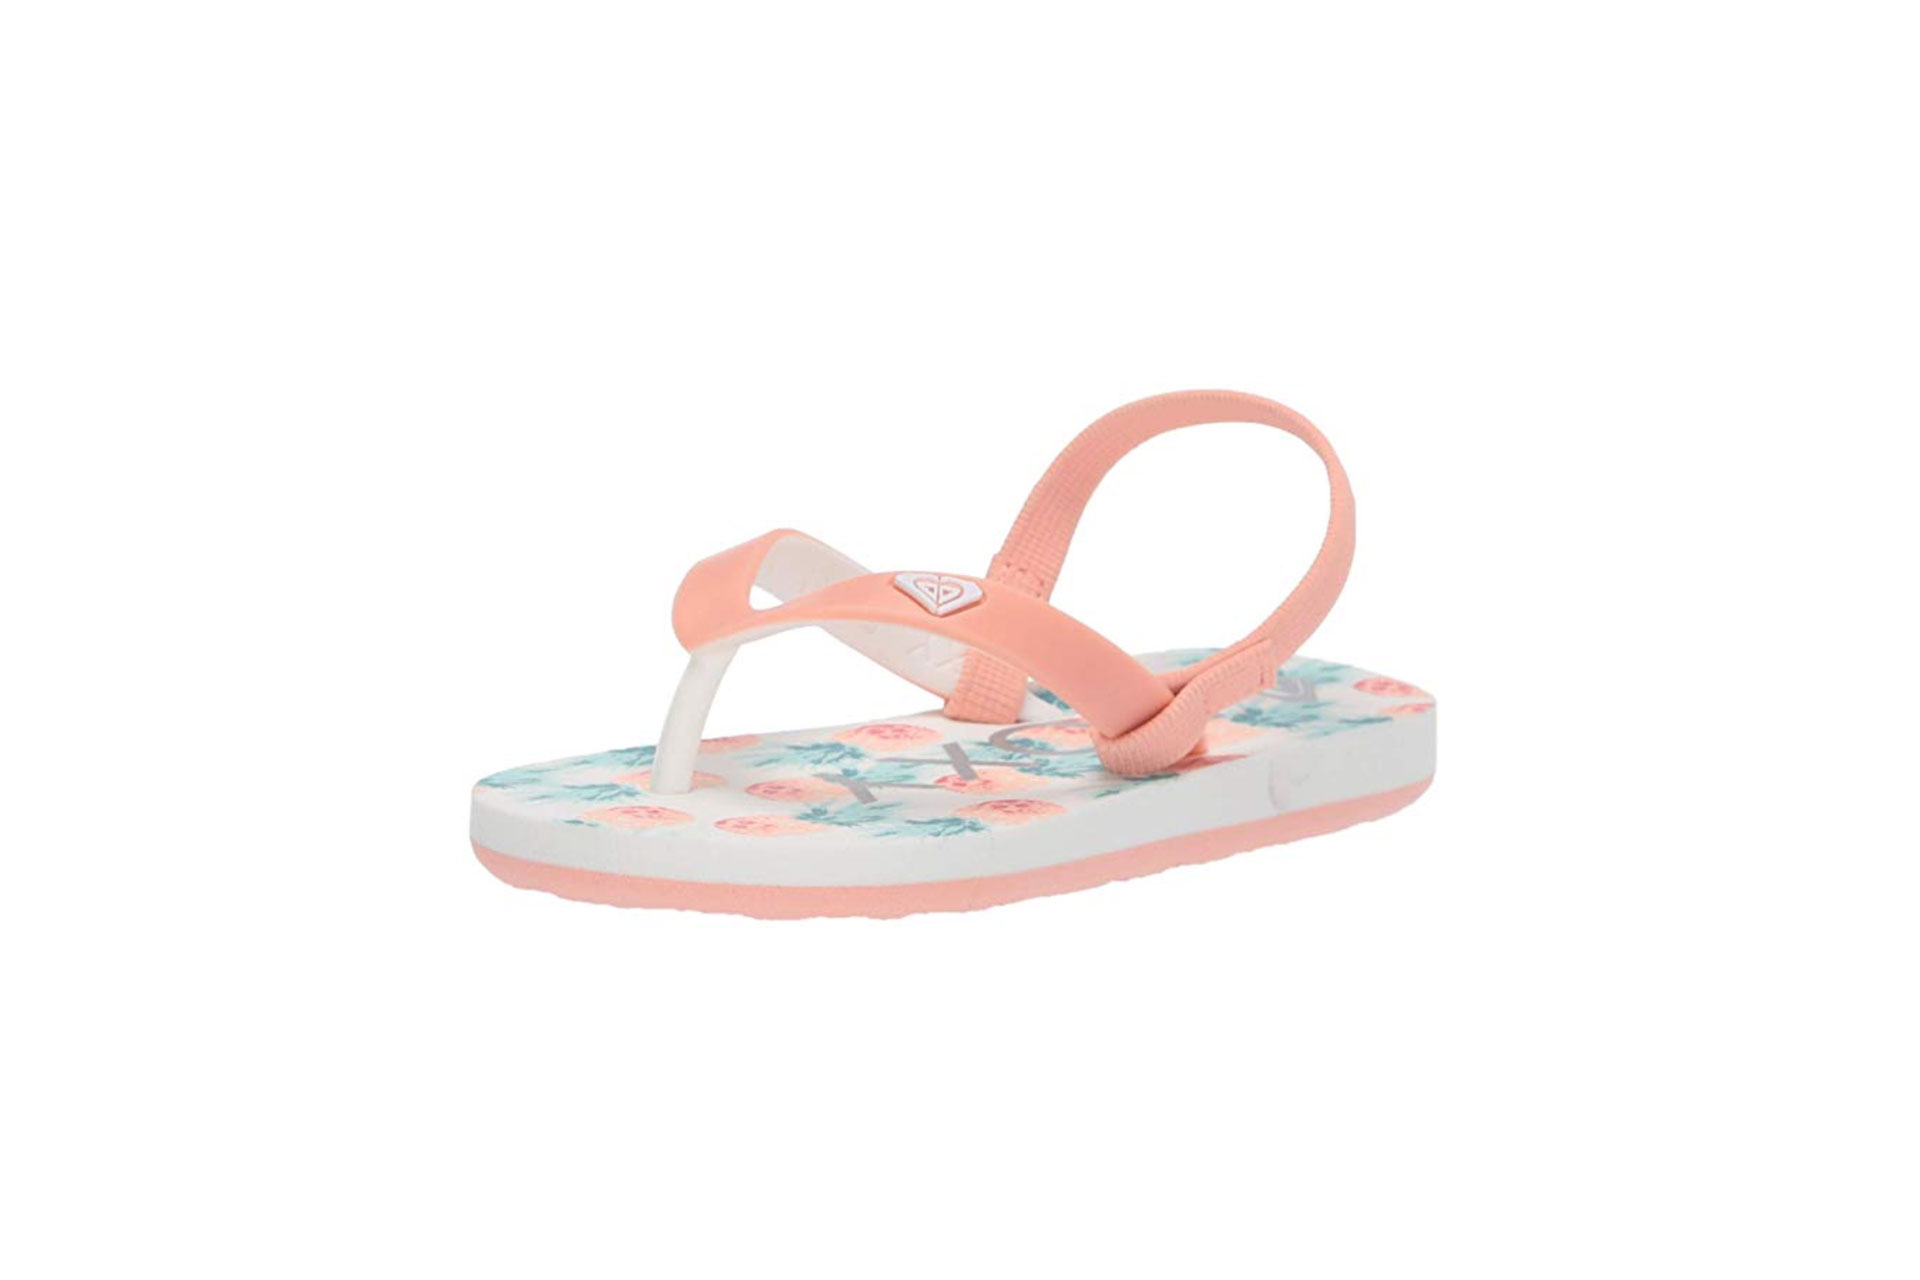 Roxy Girls Sandals; Courtesy of Amazon